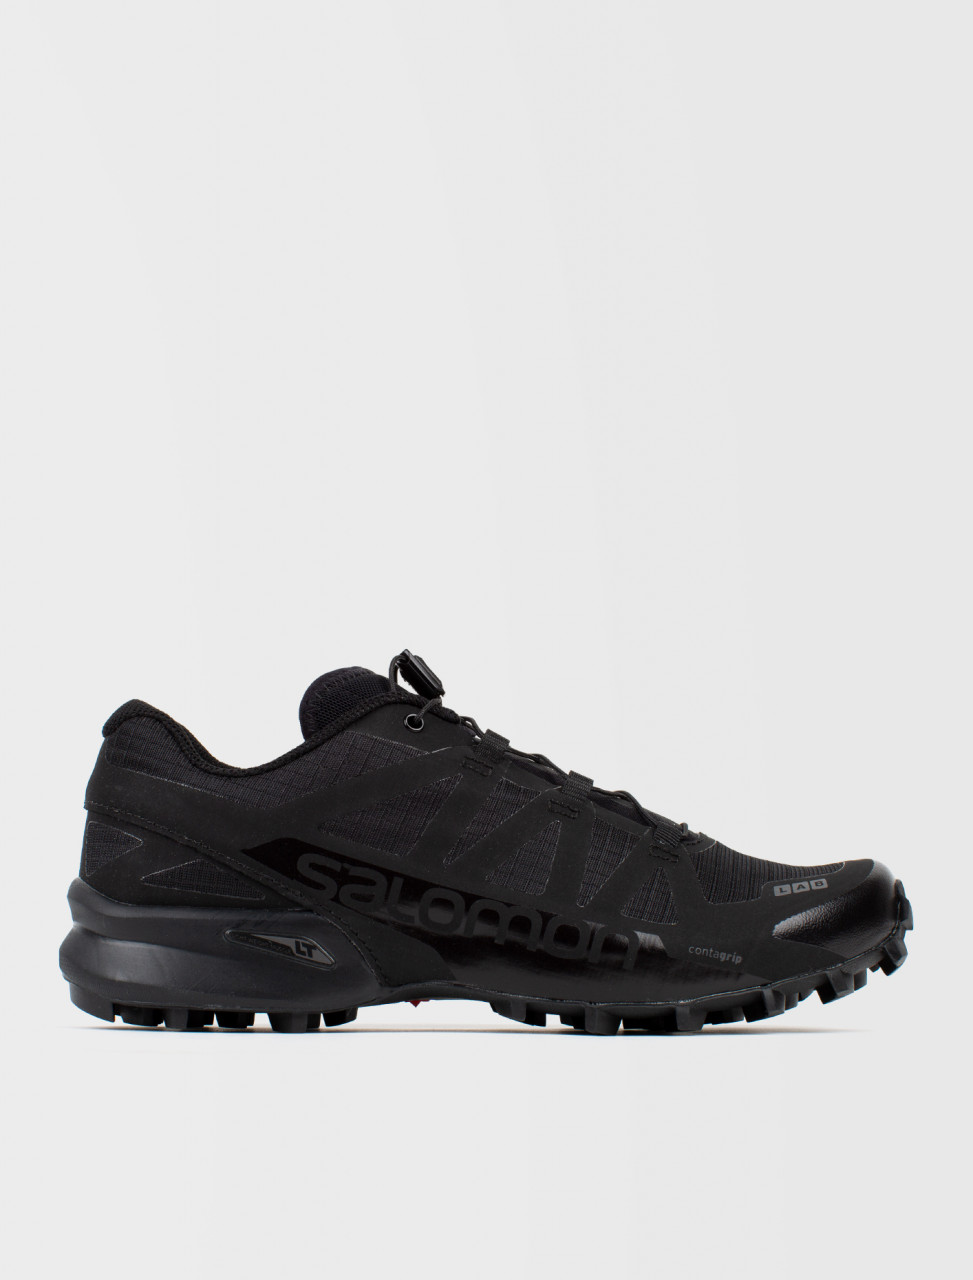 S/LAB Speedcross Black LTD Sneaker